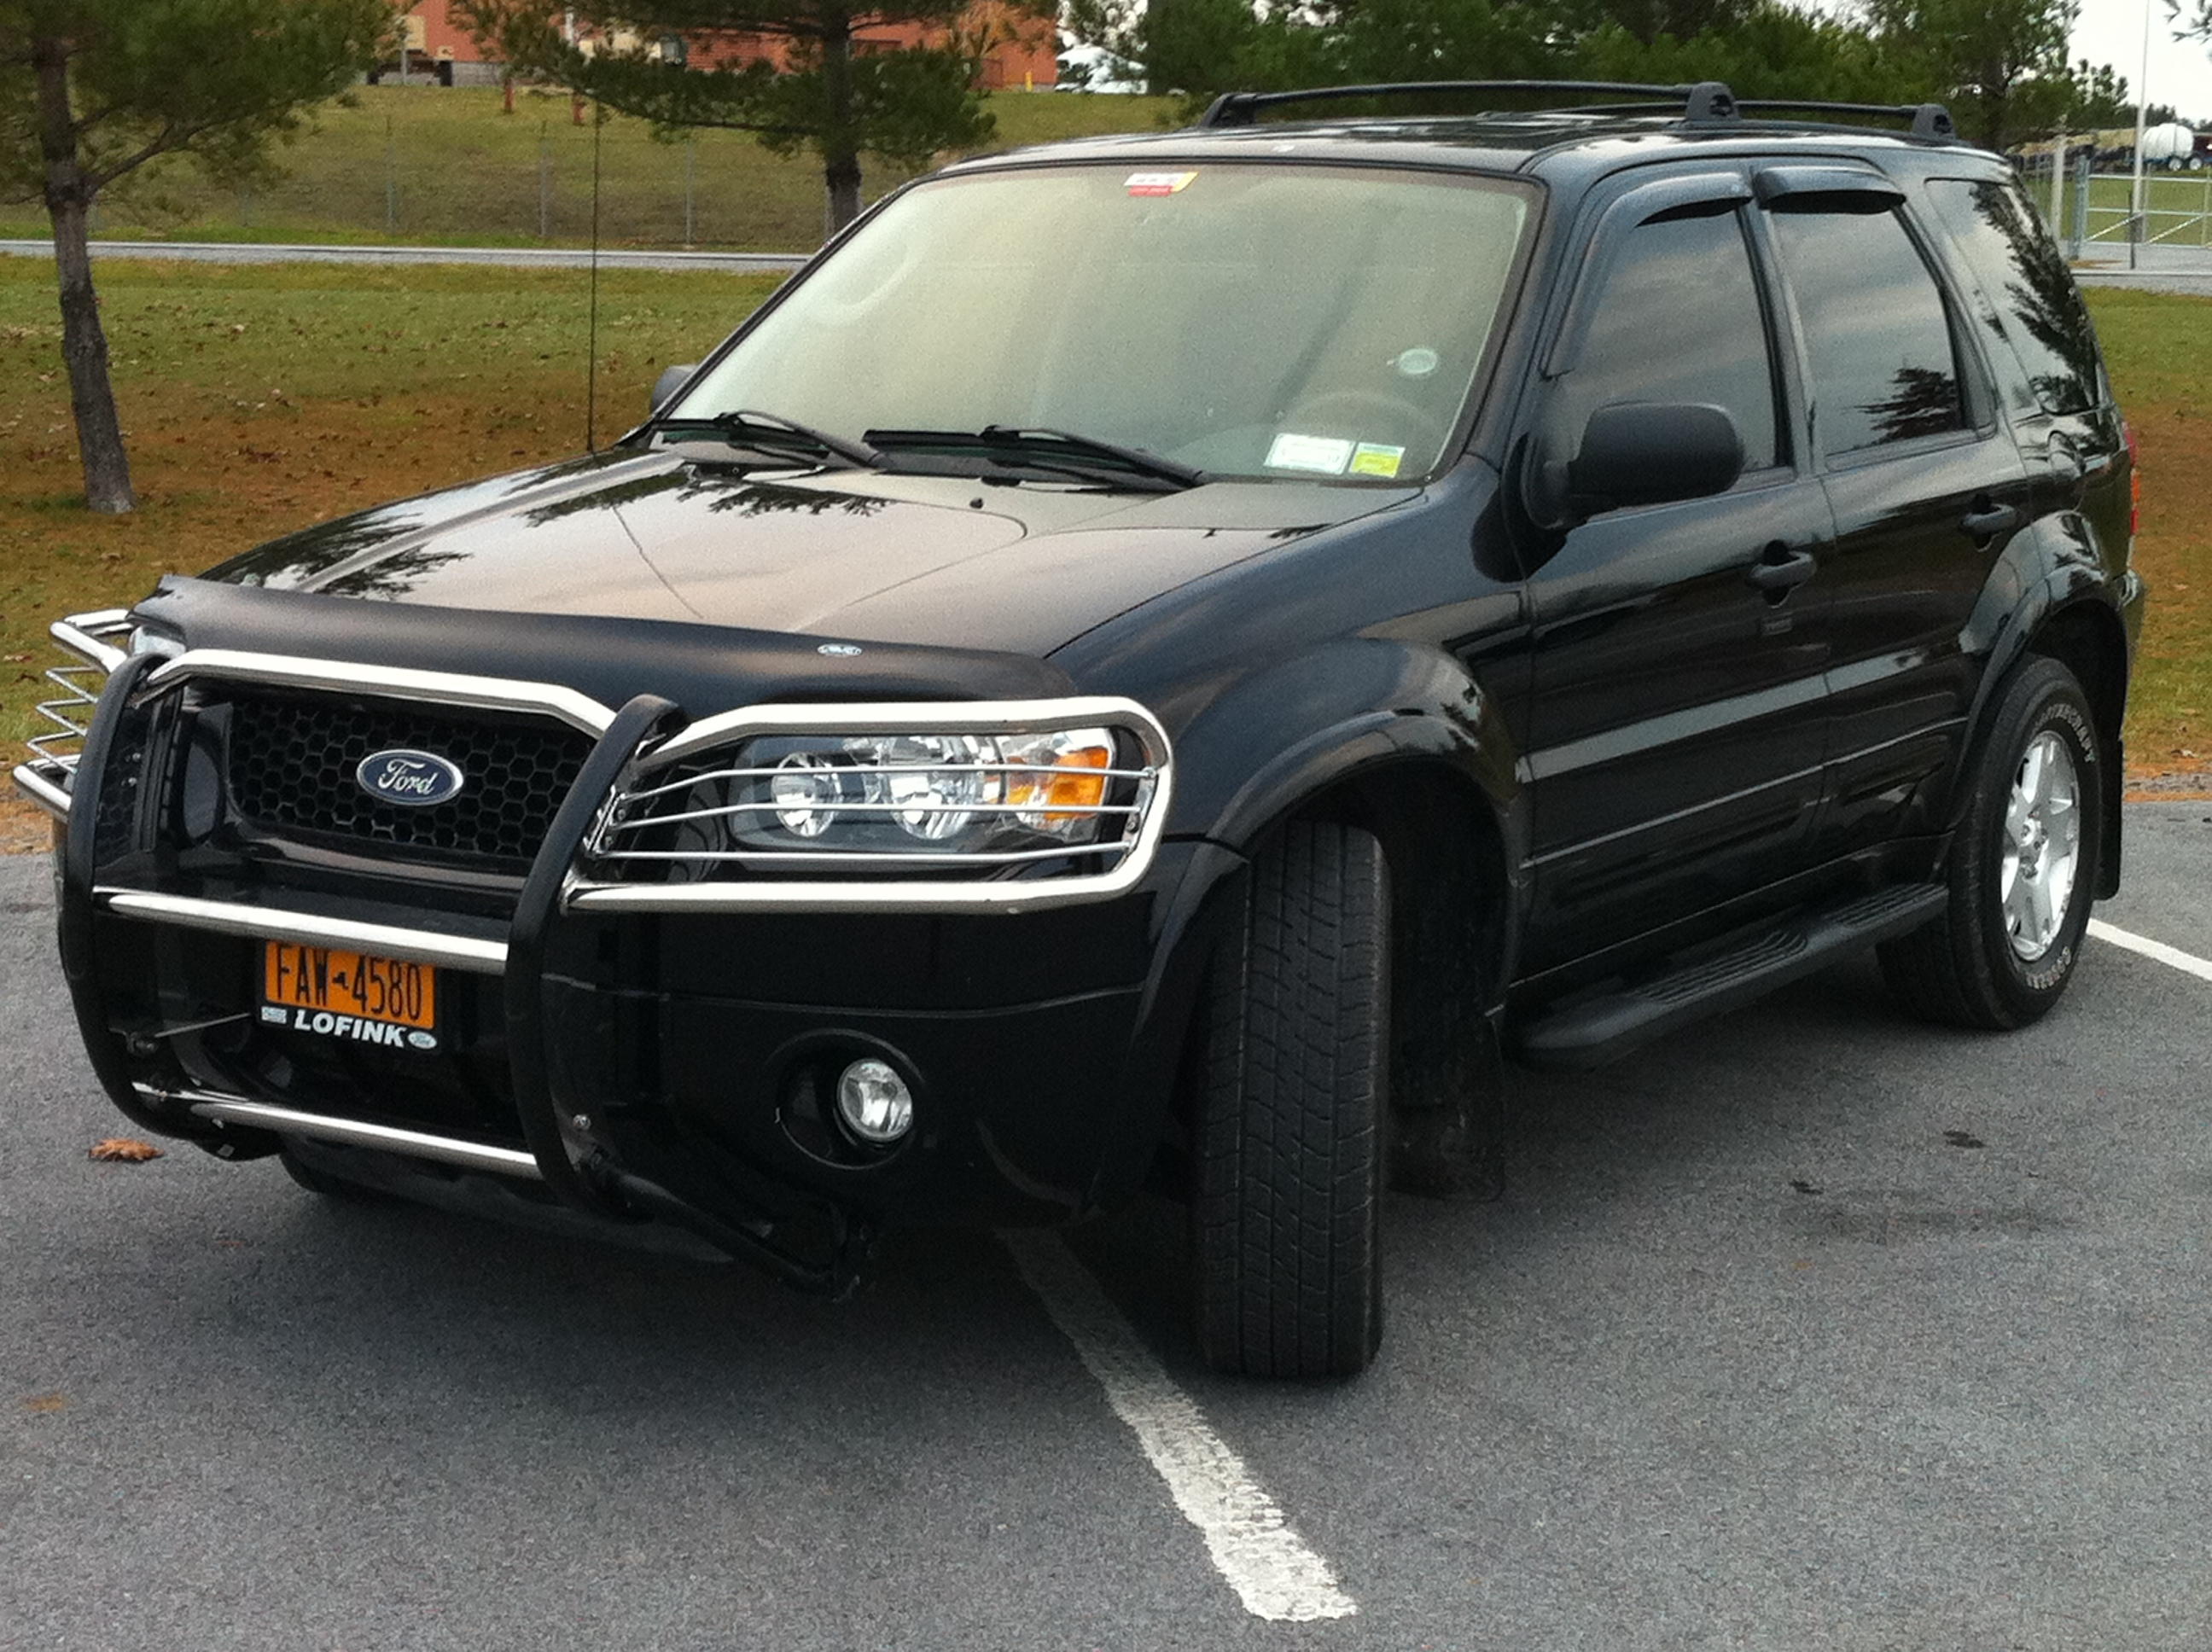 xxcadencexx 2007 ford escapexlt sport utility 4d specs. Black Bedroom Furniture Sets. Home Design Ideas